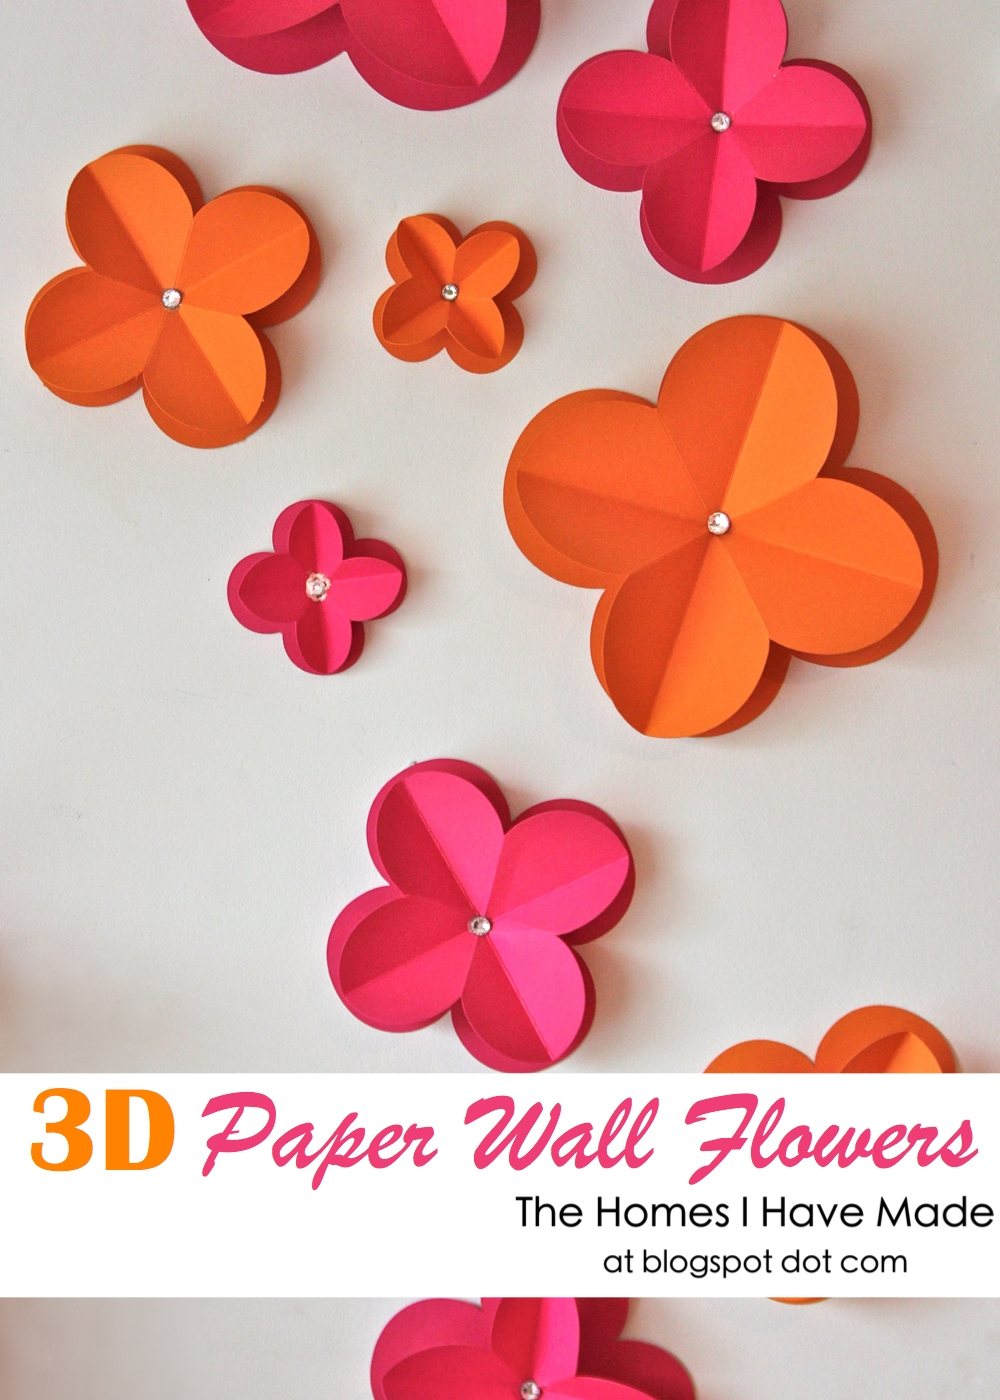 3d paper wall flowers the homes i have made wall flowers over at positively splendid just in case you didnt pop over there for the how do details i wanted to have them here for you mightylinksfo